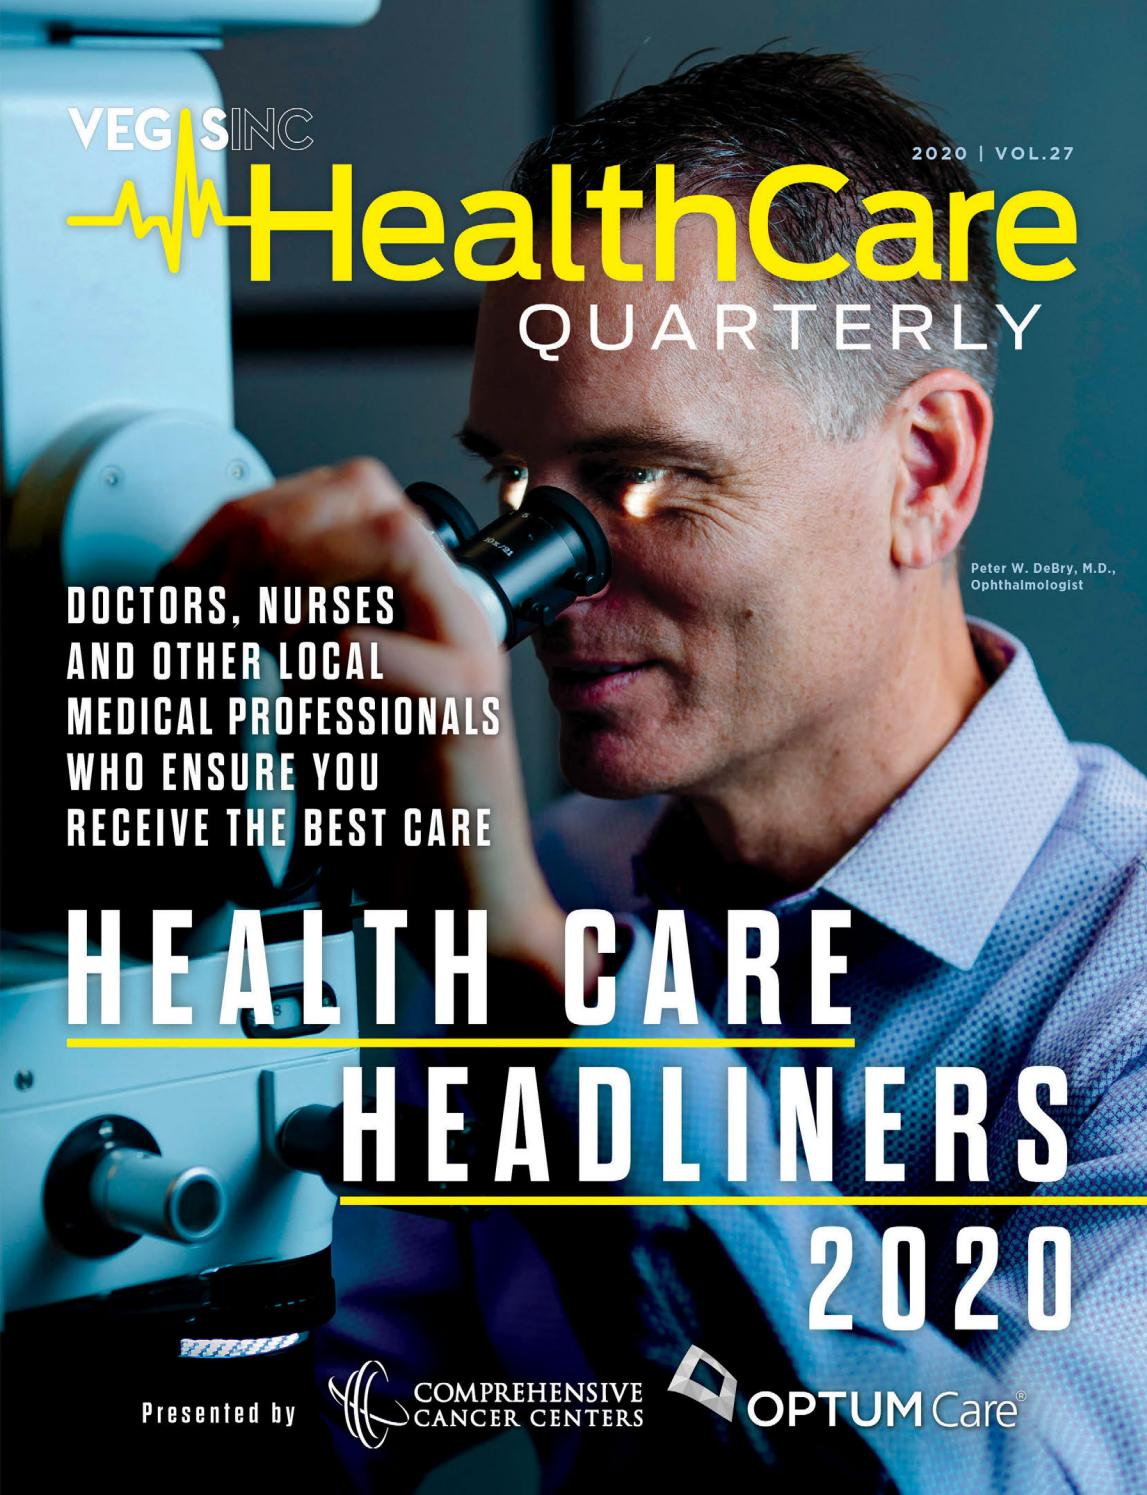 2020 02 27 Health Care Quarterly Vol 27 Winter 2020 By Greenspun Media Group Issuu